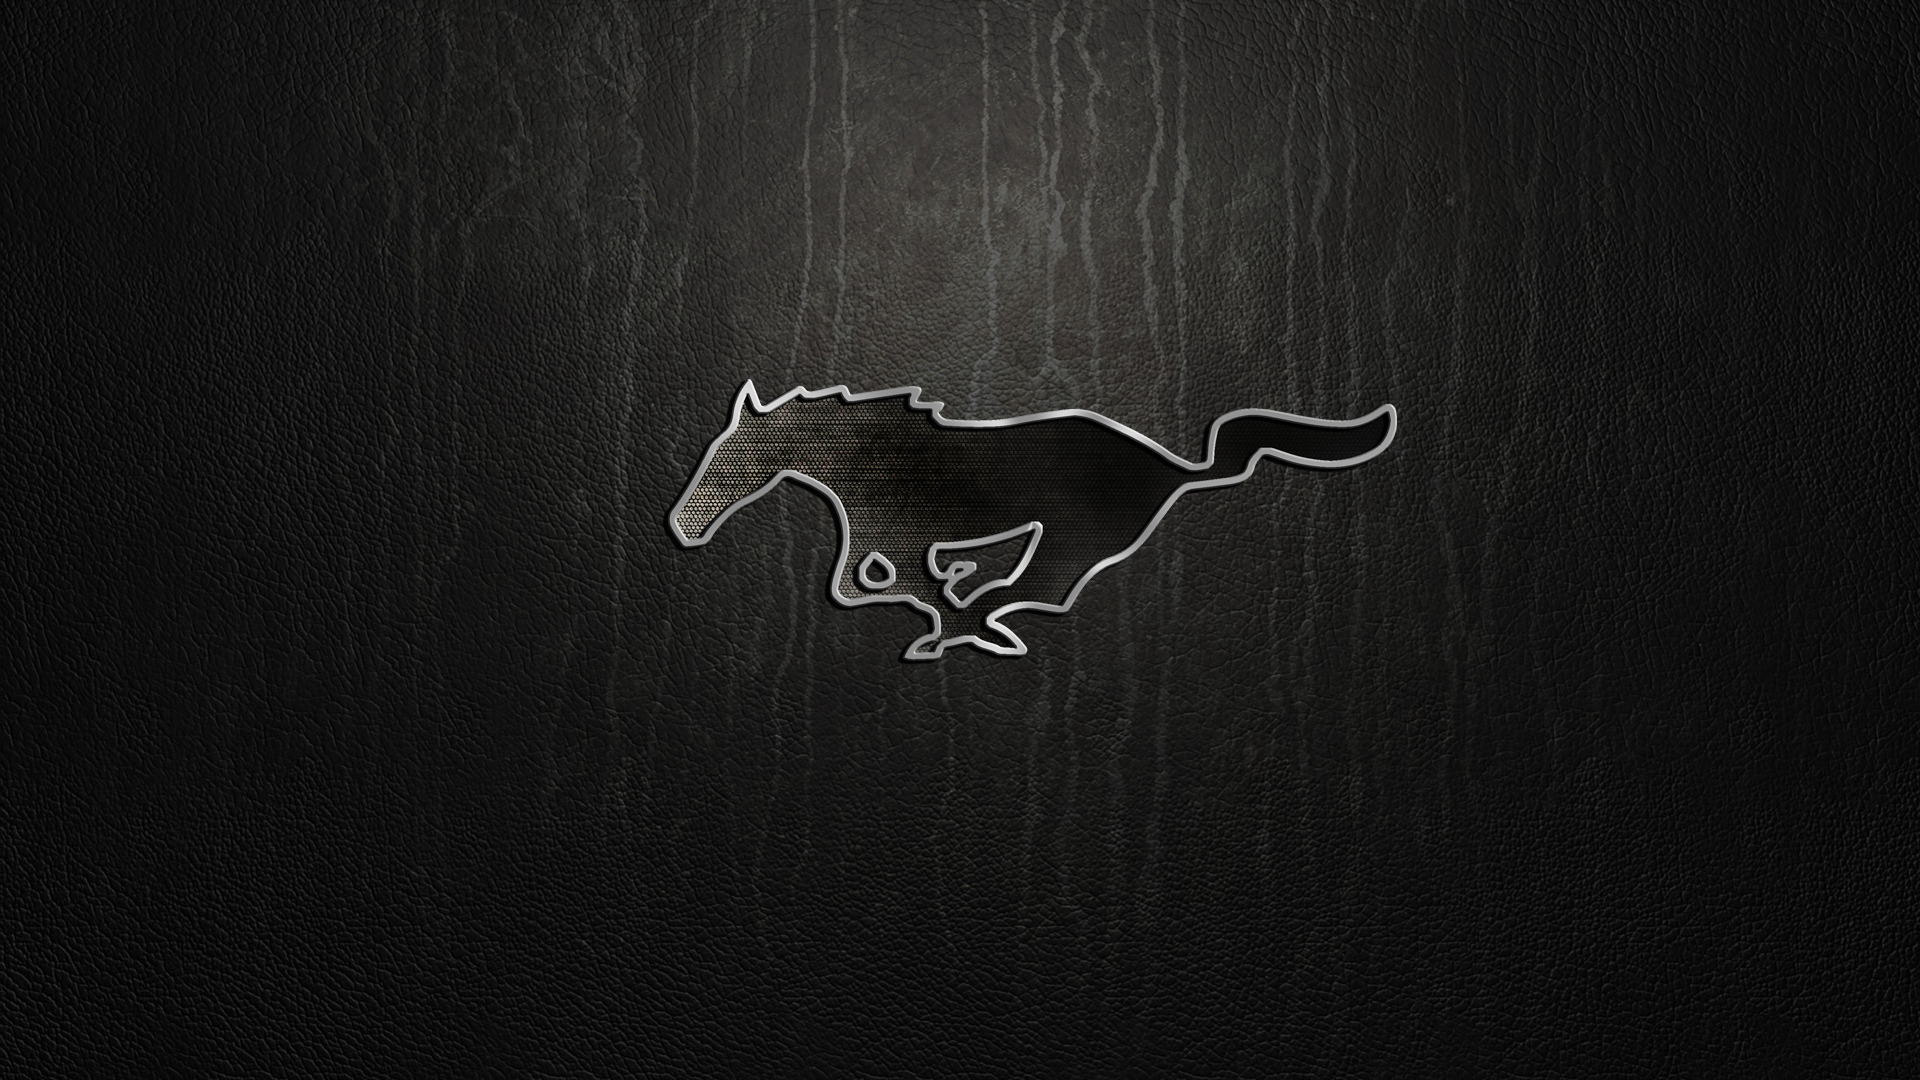 mustang logo wallpaper for iphone gtc mustangs ford 5 - medium